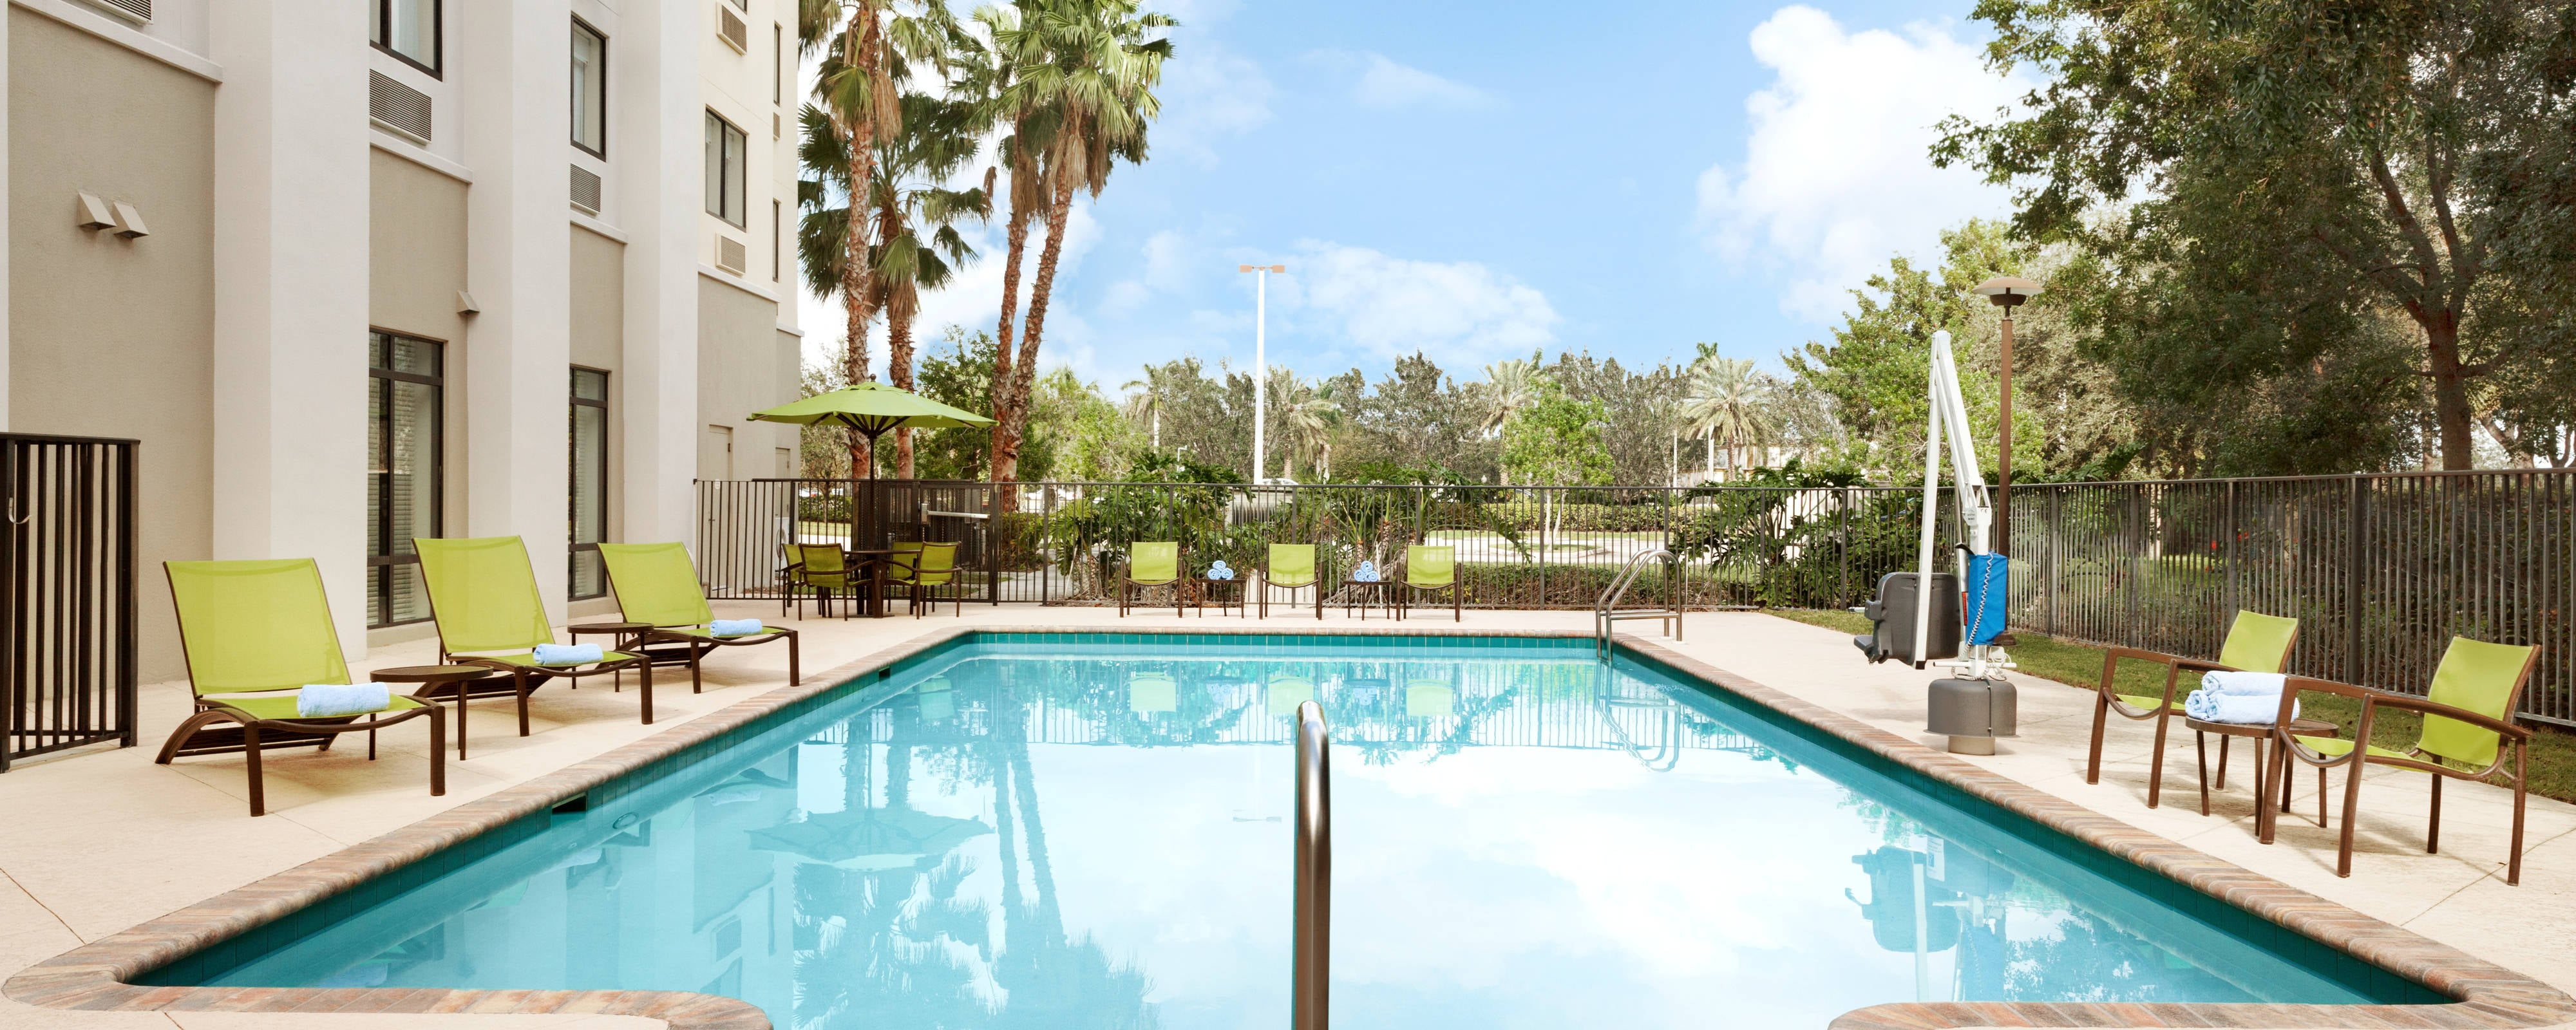 Palm Beach Florida Hotels | SpringHill Suites West Palm Beach I-95